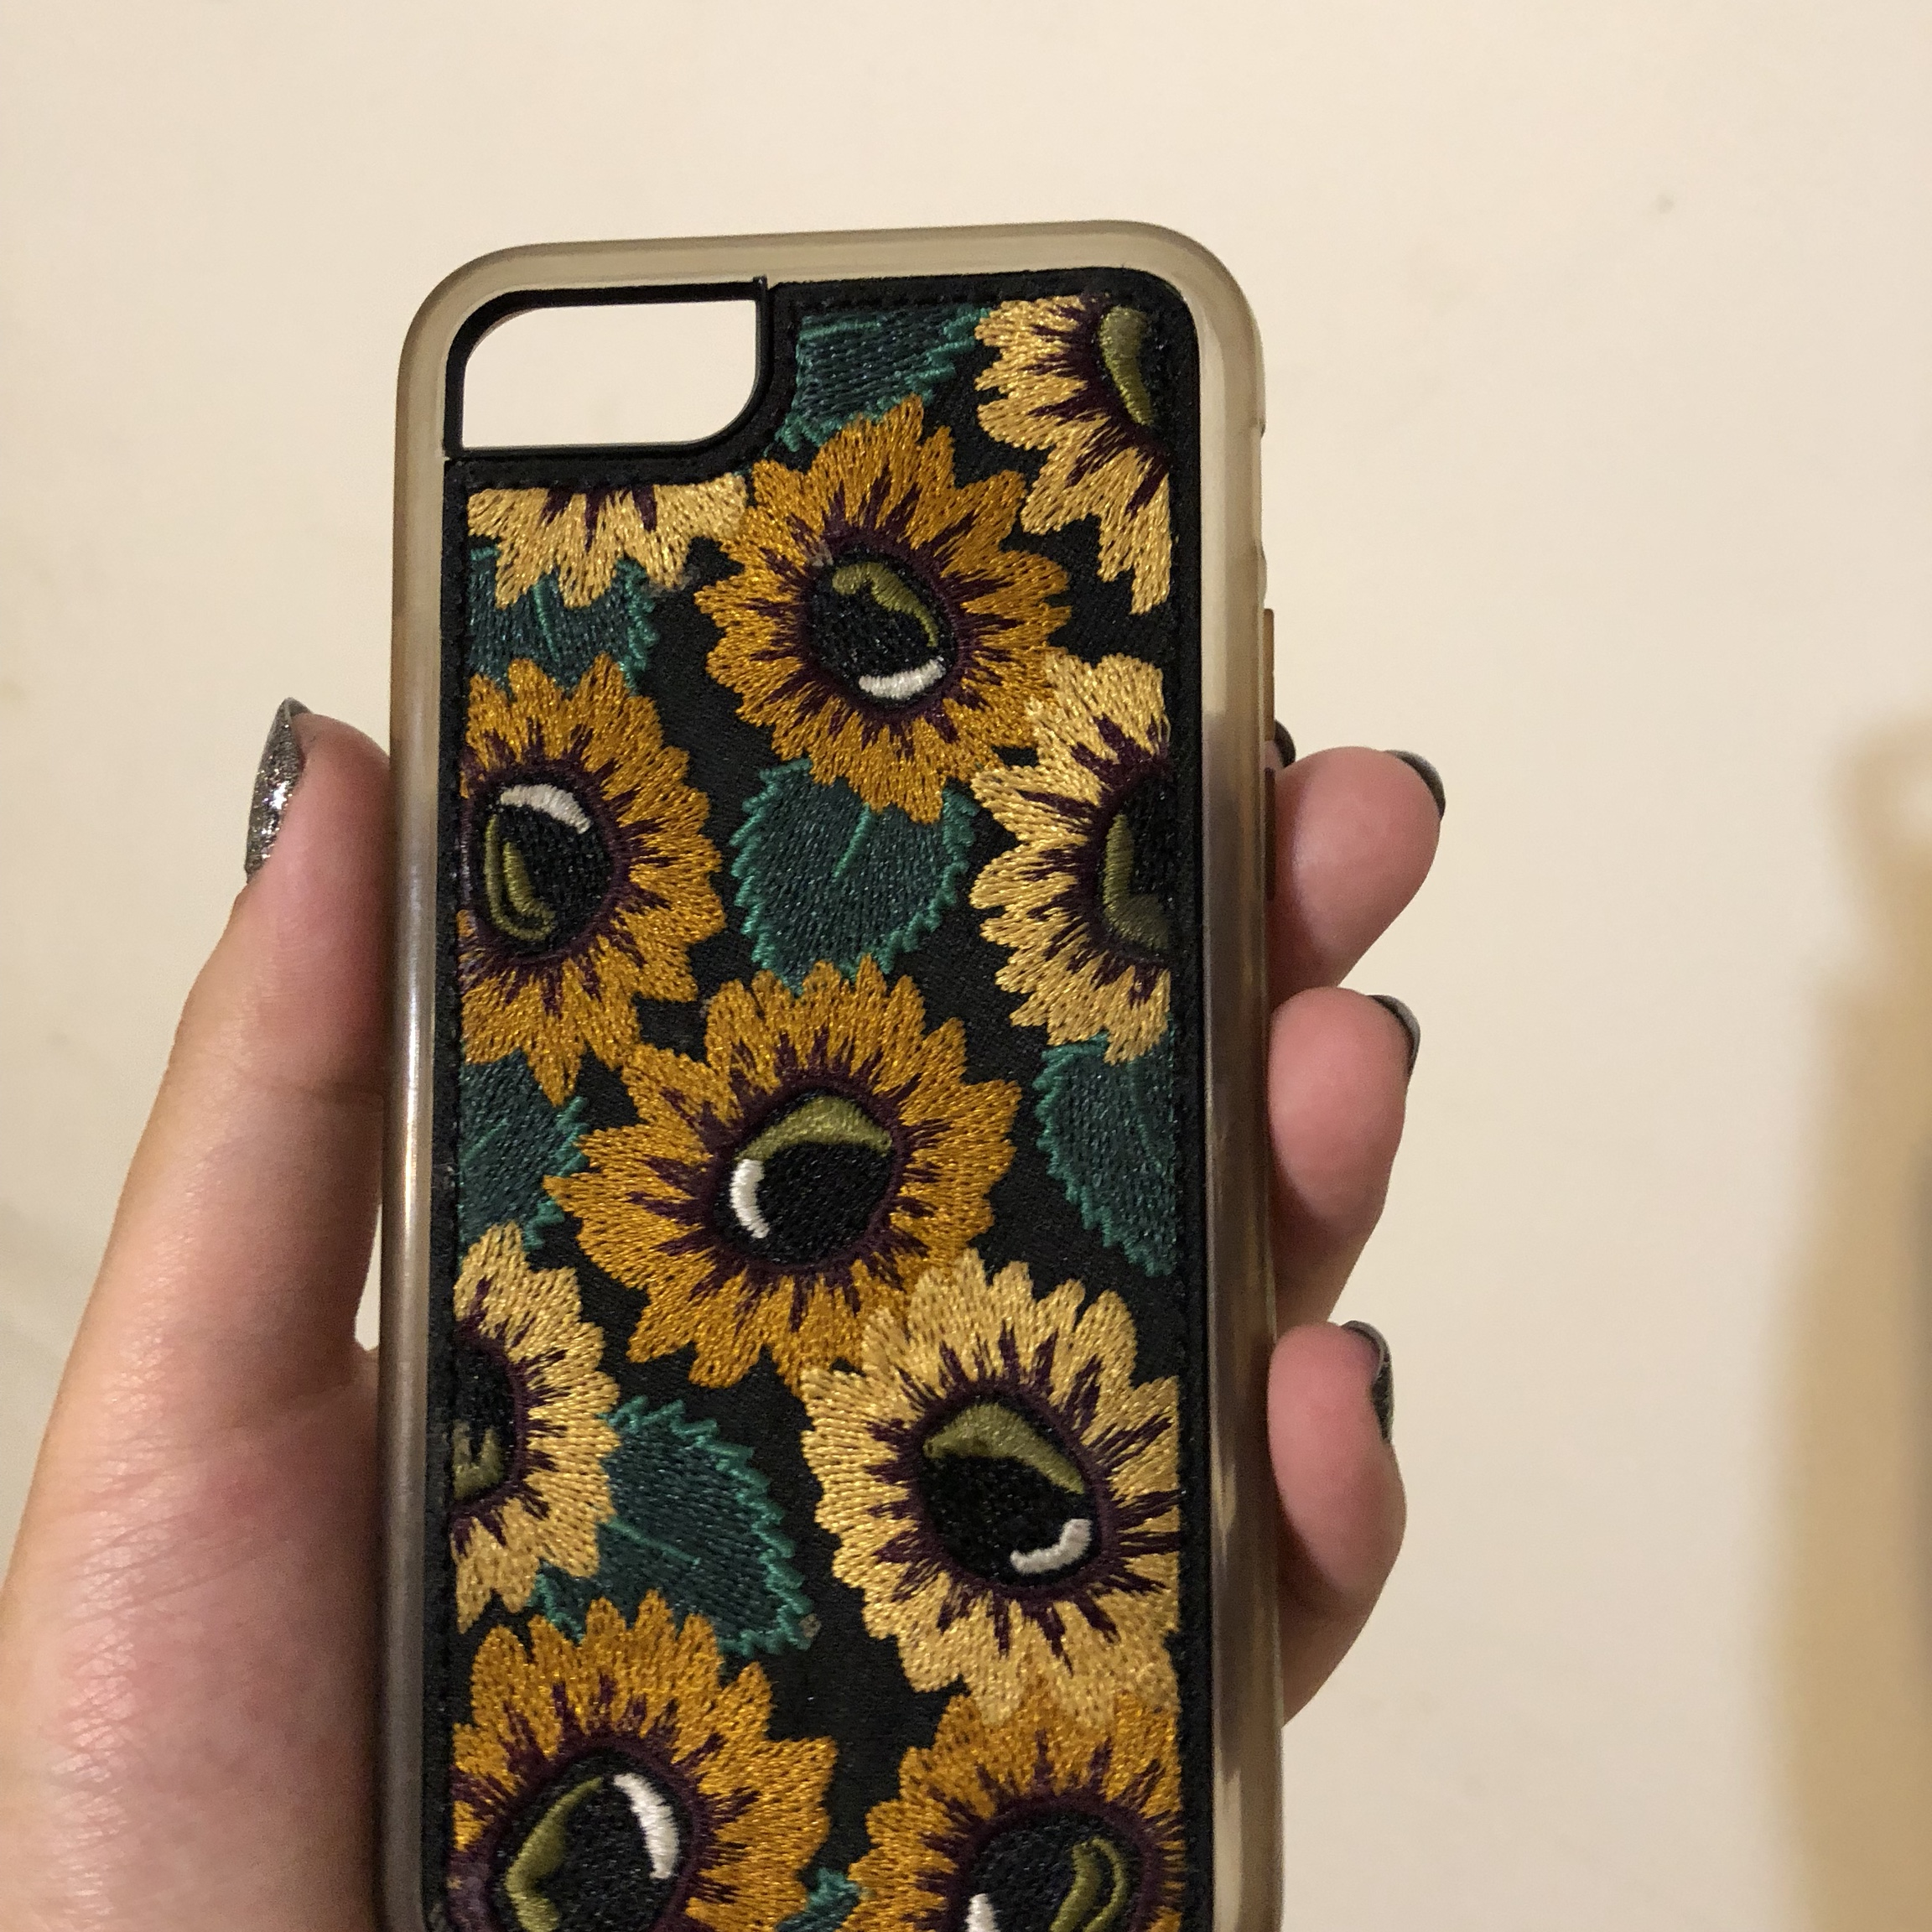 buy online f2831 73eb9 Embroidered sunflower iPhone 6 case. - Depop